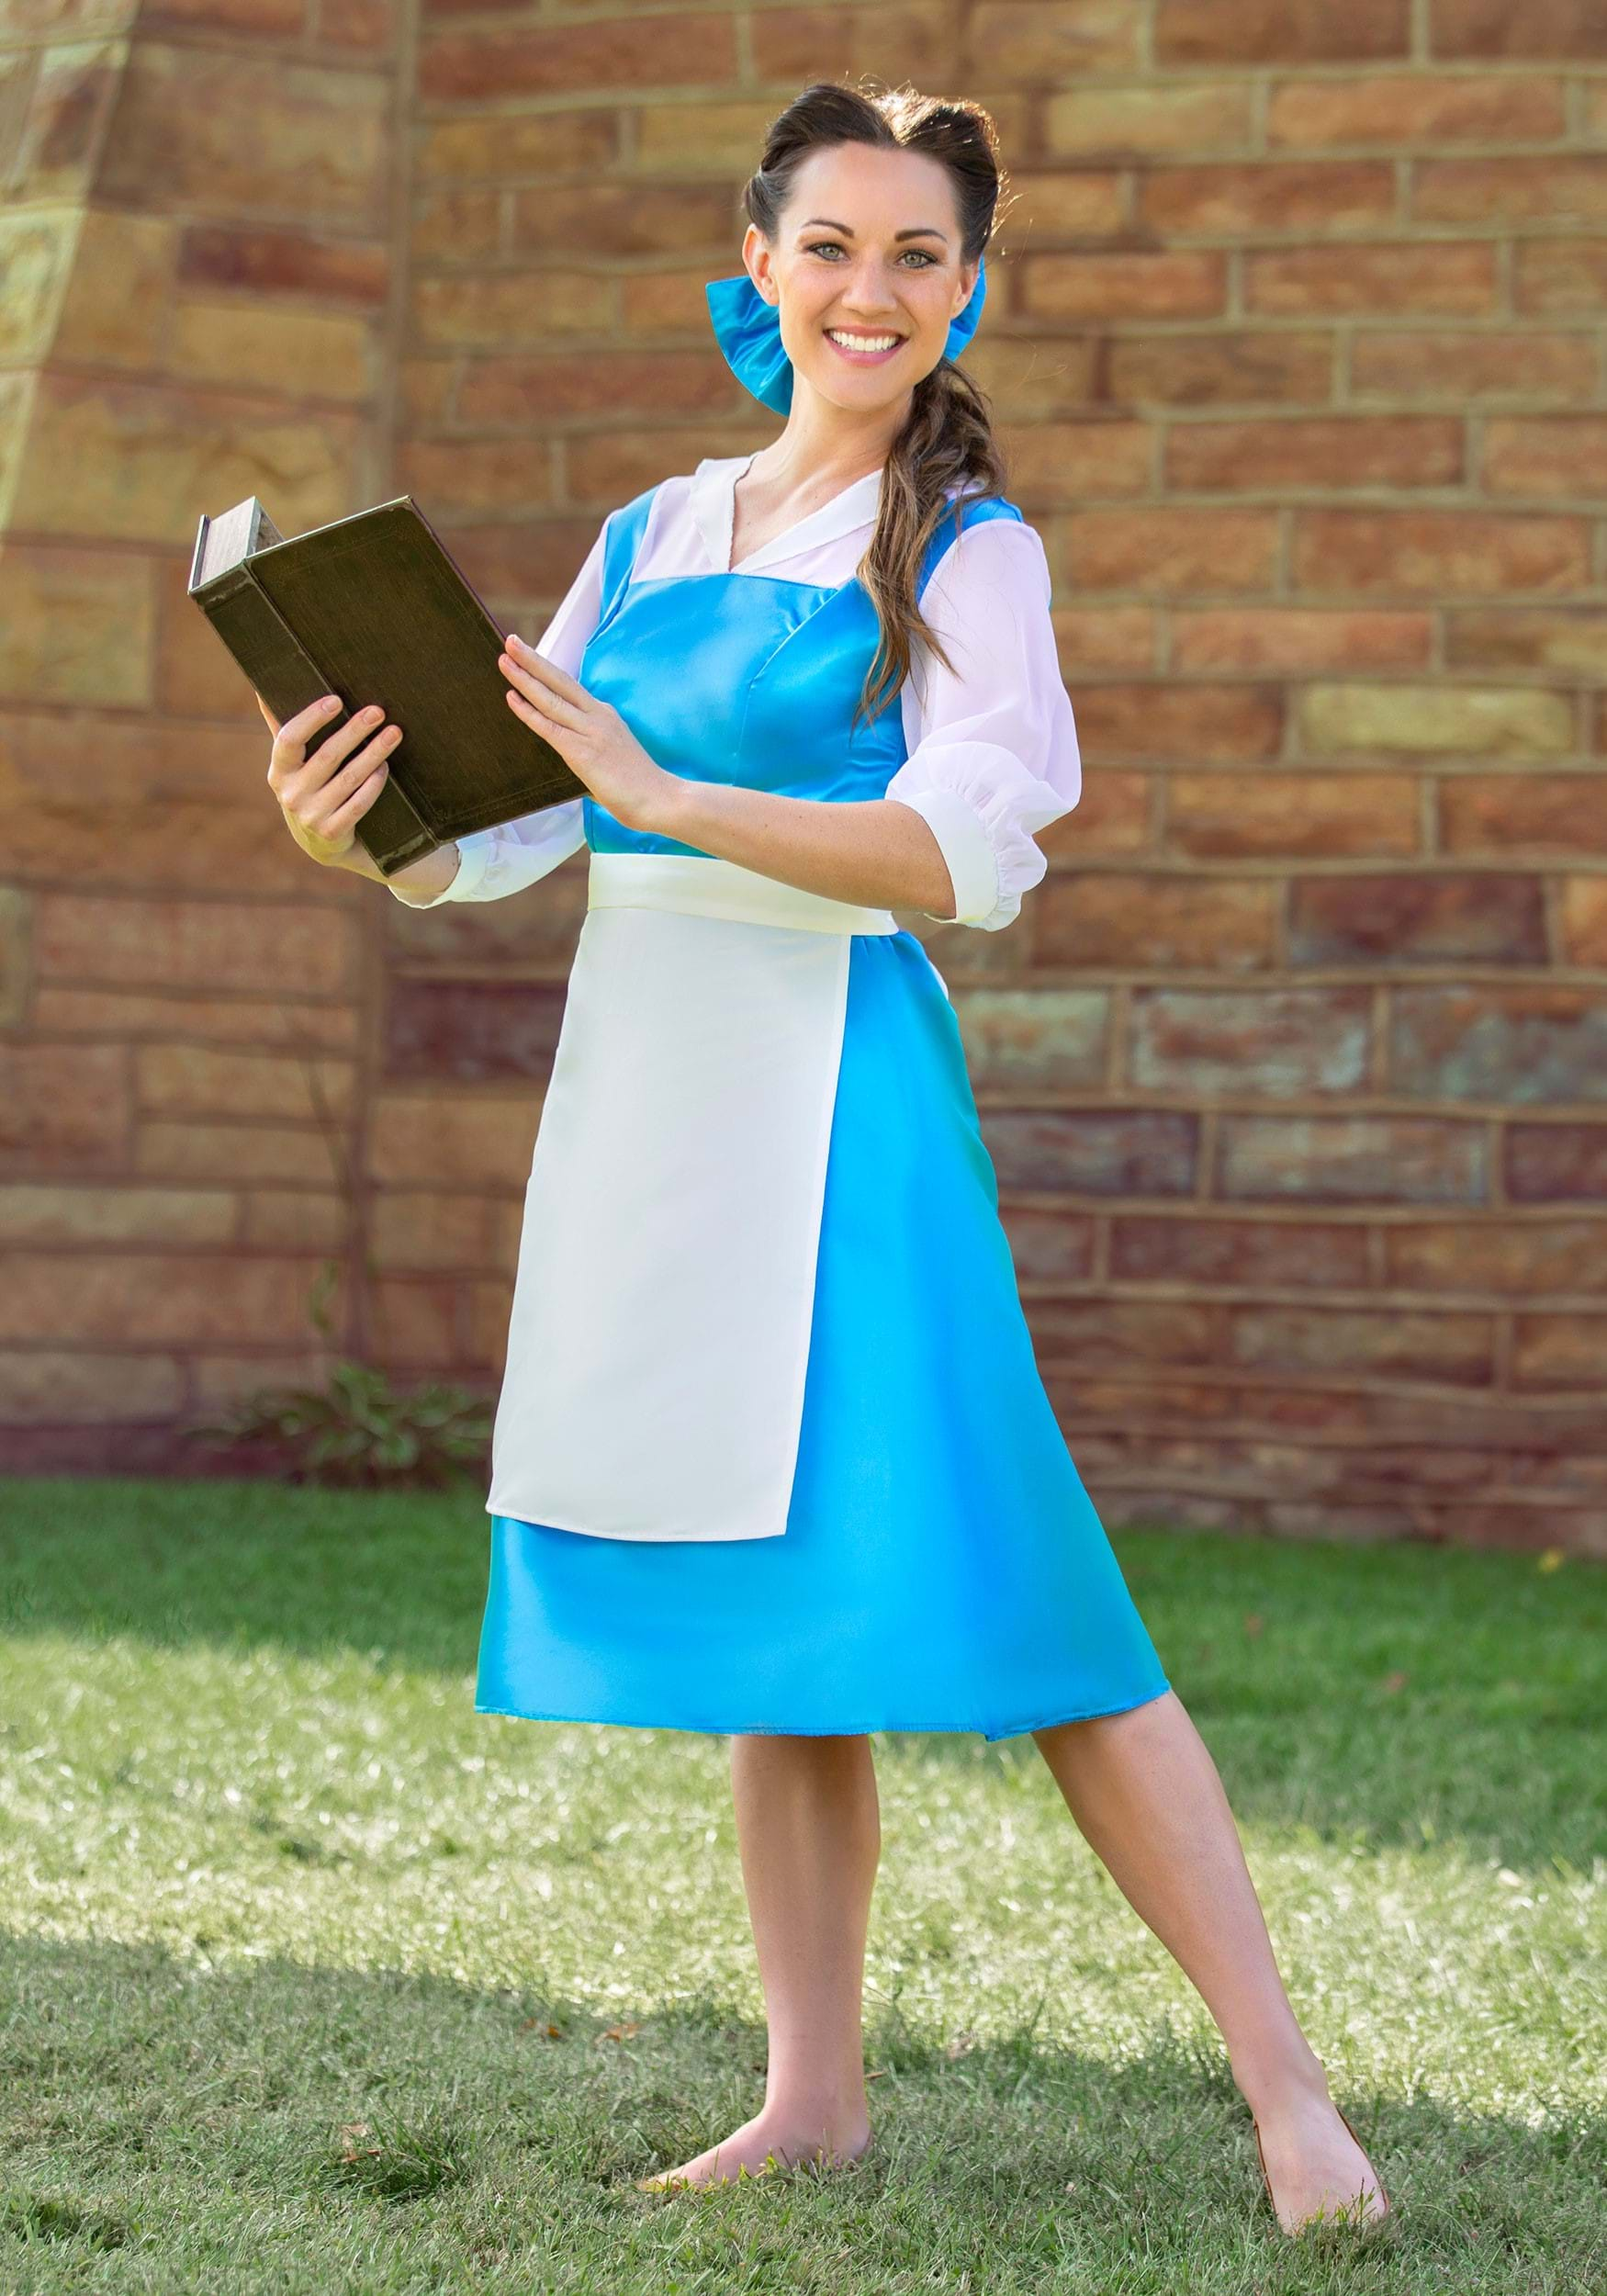 Belle Blue Costume Dress For Adults